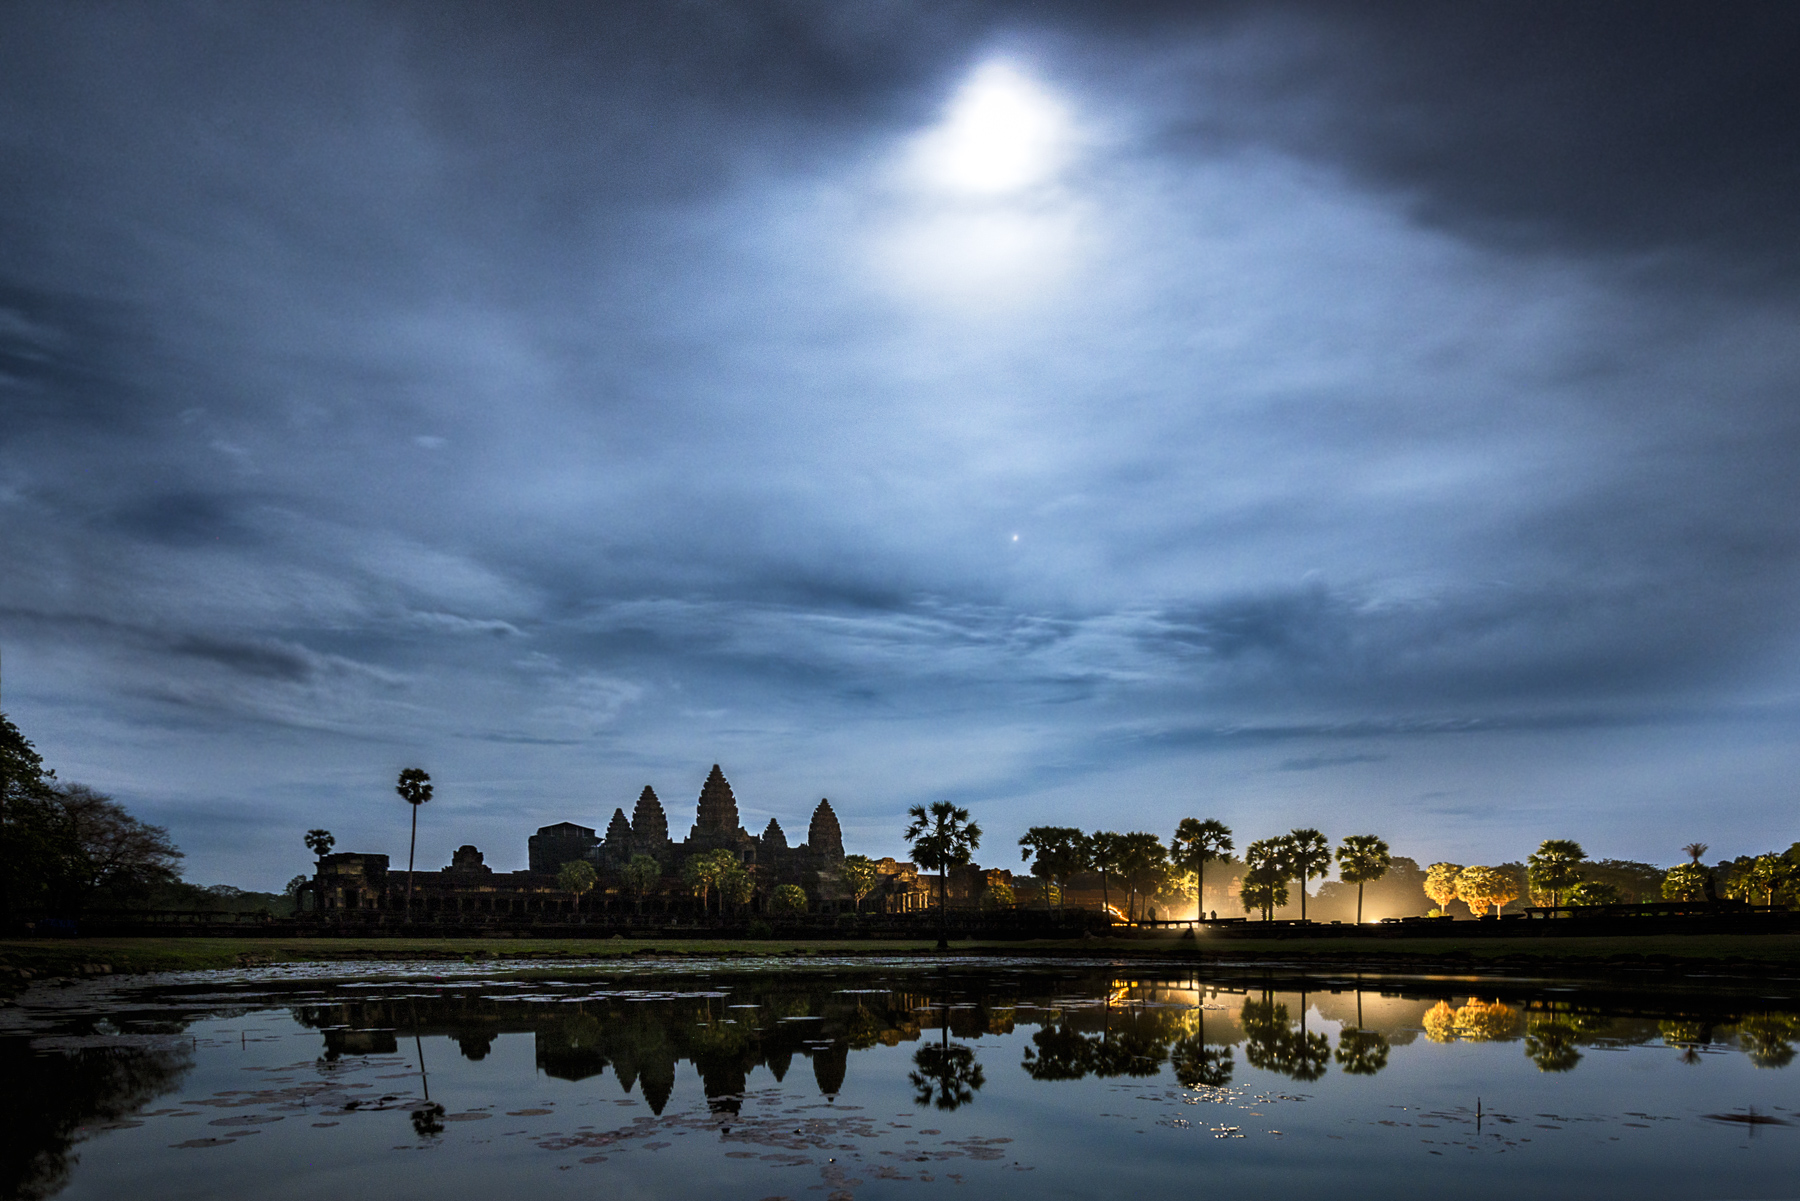 Angkor Wat reflecting in the surrounding pond beneath the light of the full moon. After the candle procession and meditation the families gather to celebrate their young children being blessed by nuns and monks for the first time as they begin their spiritual journey.